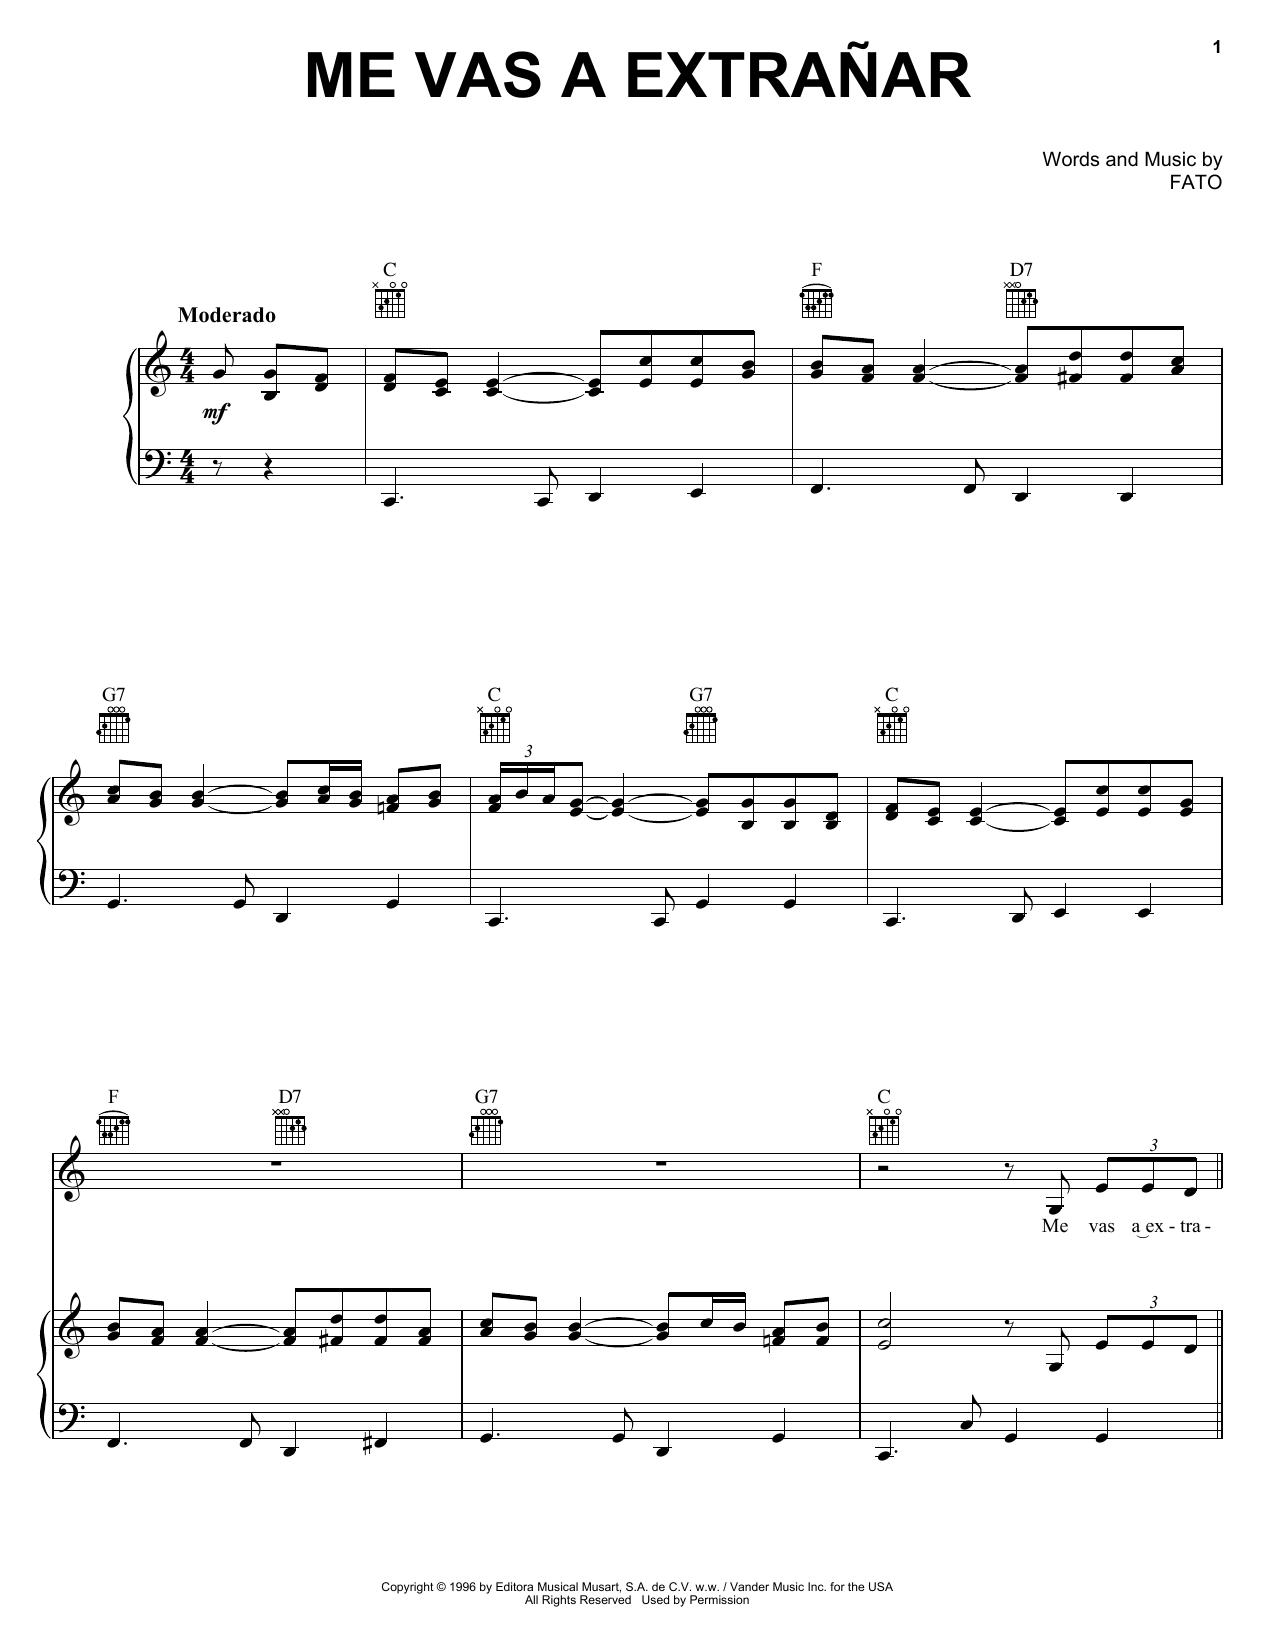 FATO Me Vas A Extranar sheet music notes and chords. Download Printable PDF.